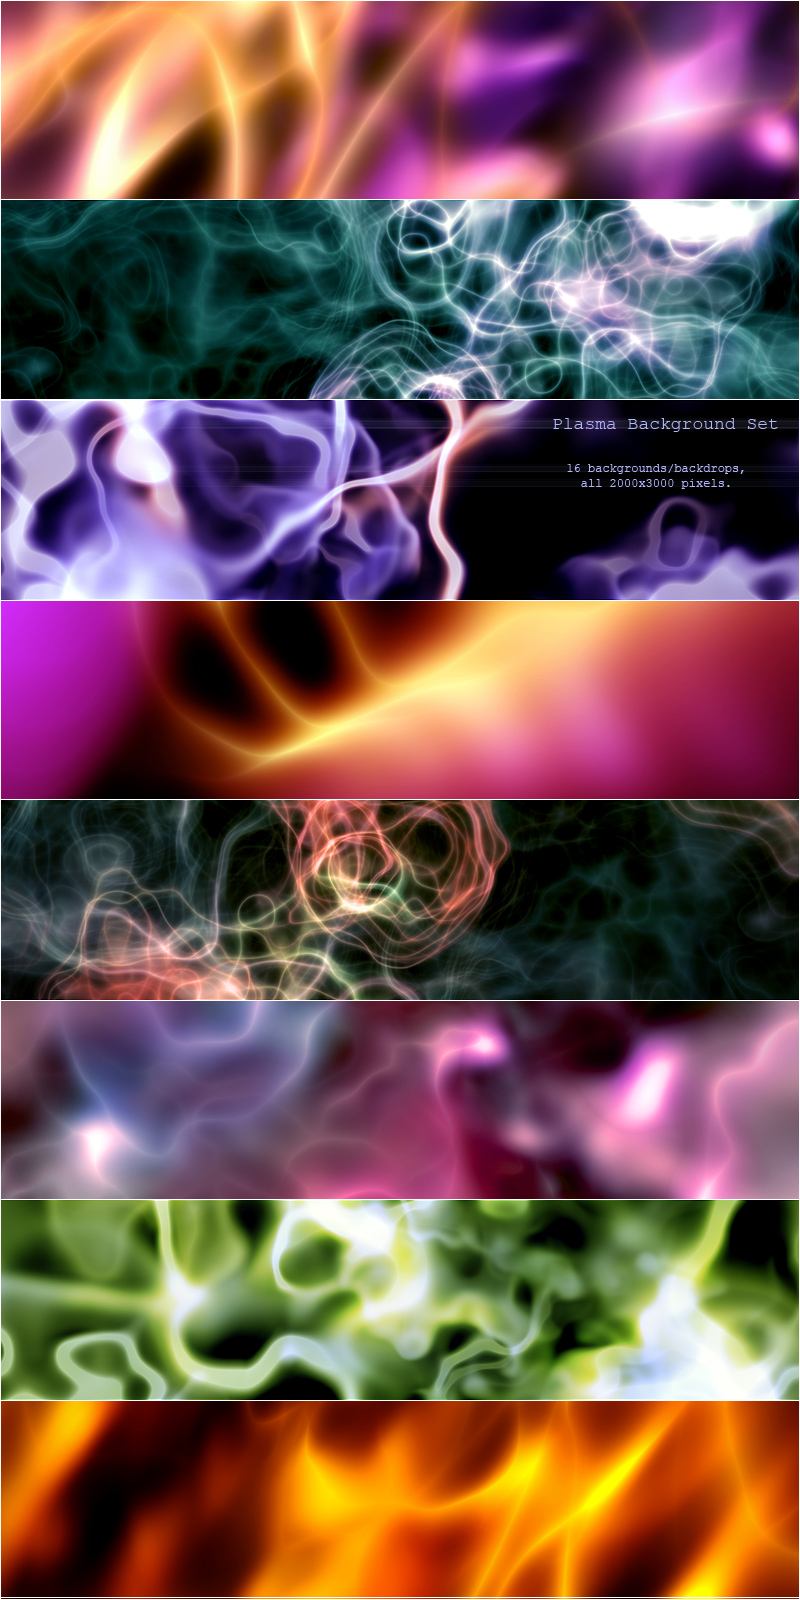 Plasma Background Set